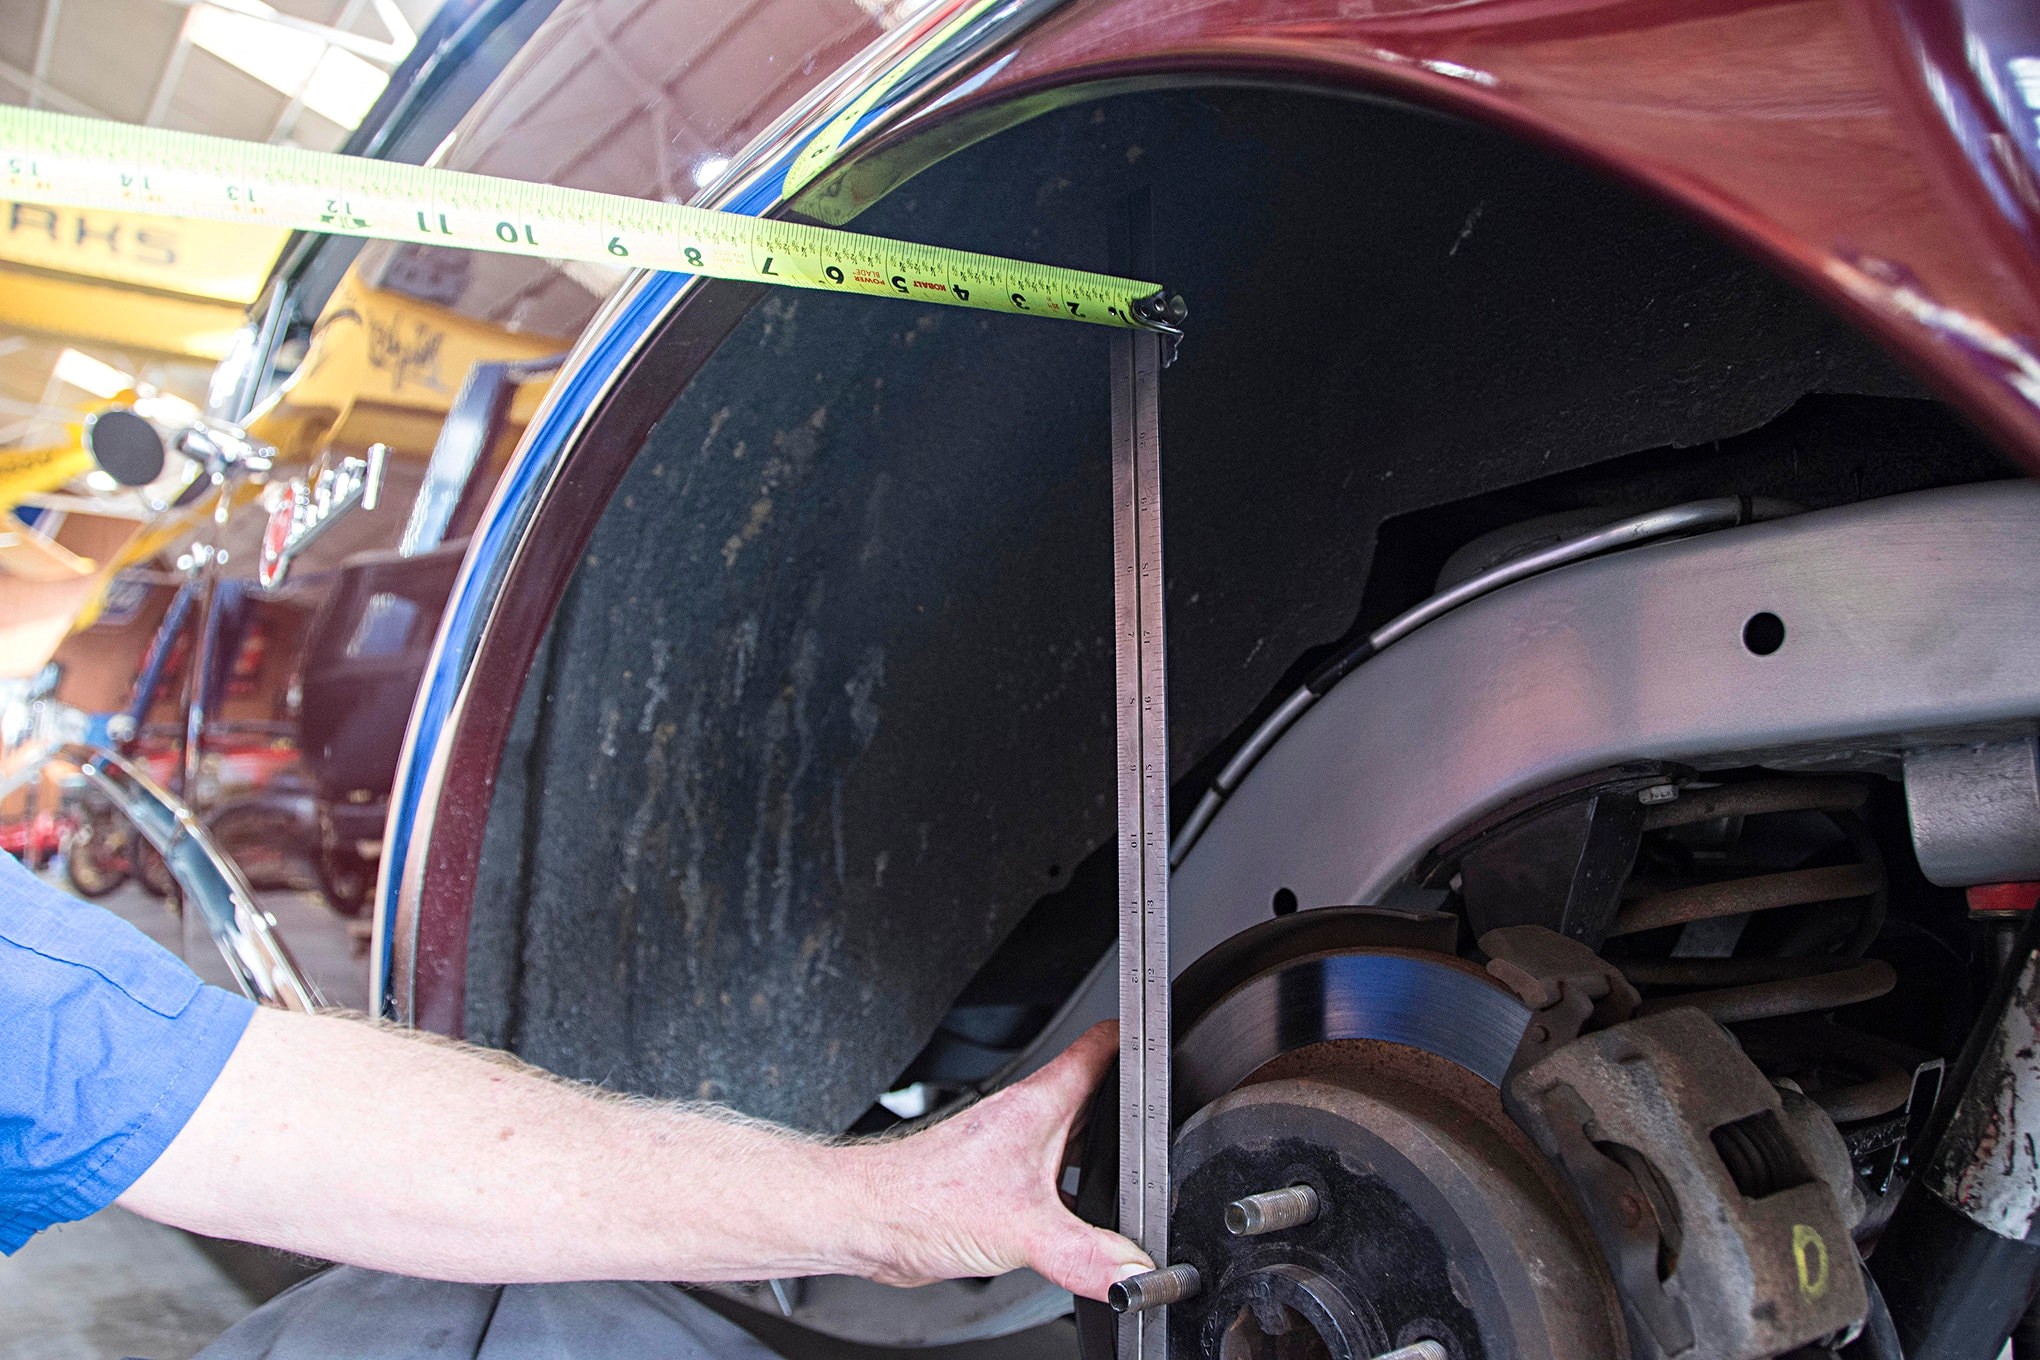 Measuring the rear is pretty straightforward. We start by measuring from the flange to the lip on the quarter-panel. We like to allow 0.5-inch for flex, and our measurement shows 5.5 inches of room from flange to lip.